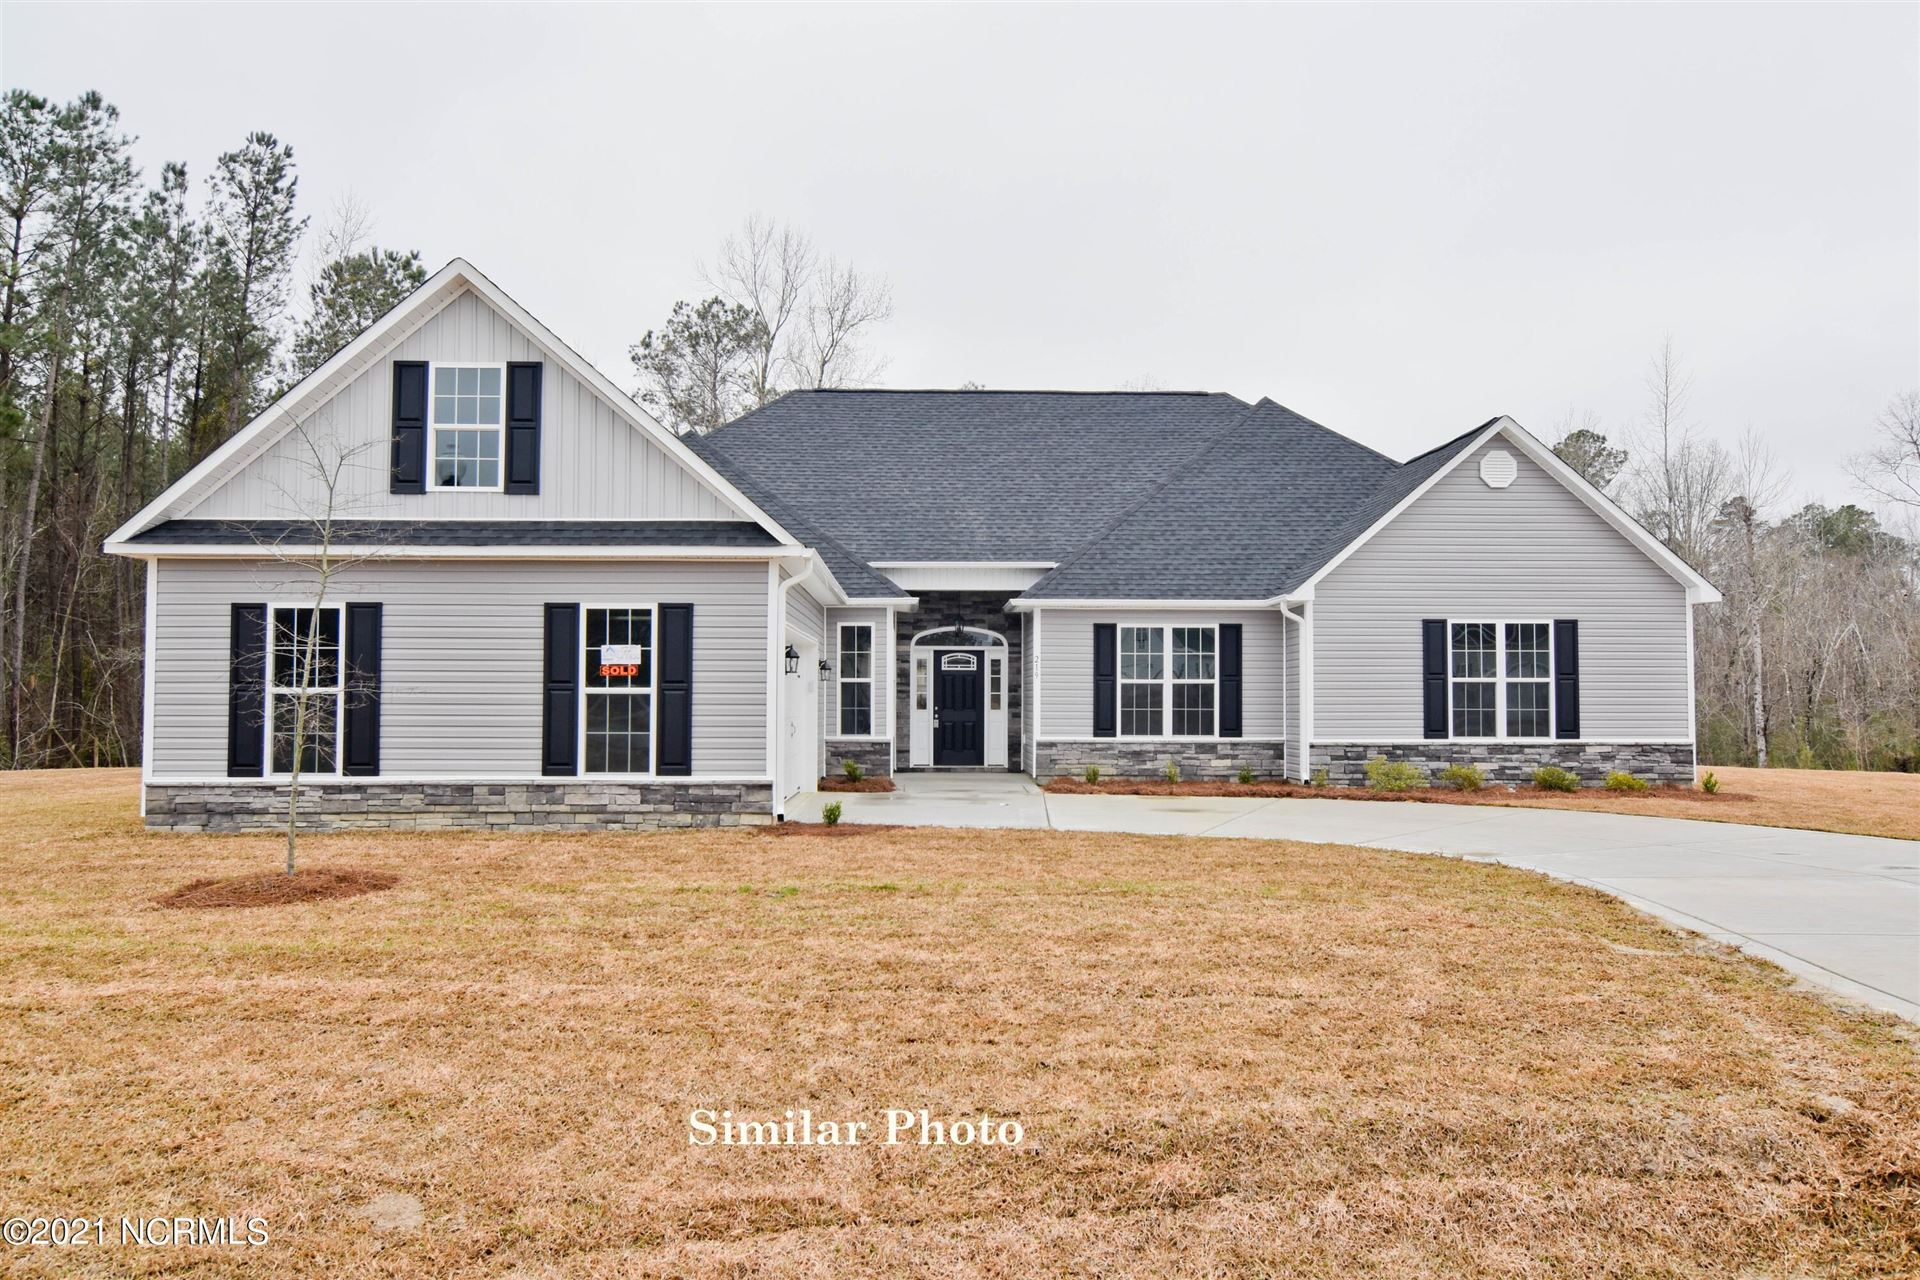 Photo for 300 Naval Store Drive, Jacksonville, NC 28546 (MLS # 100273345)